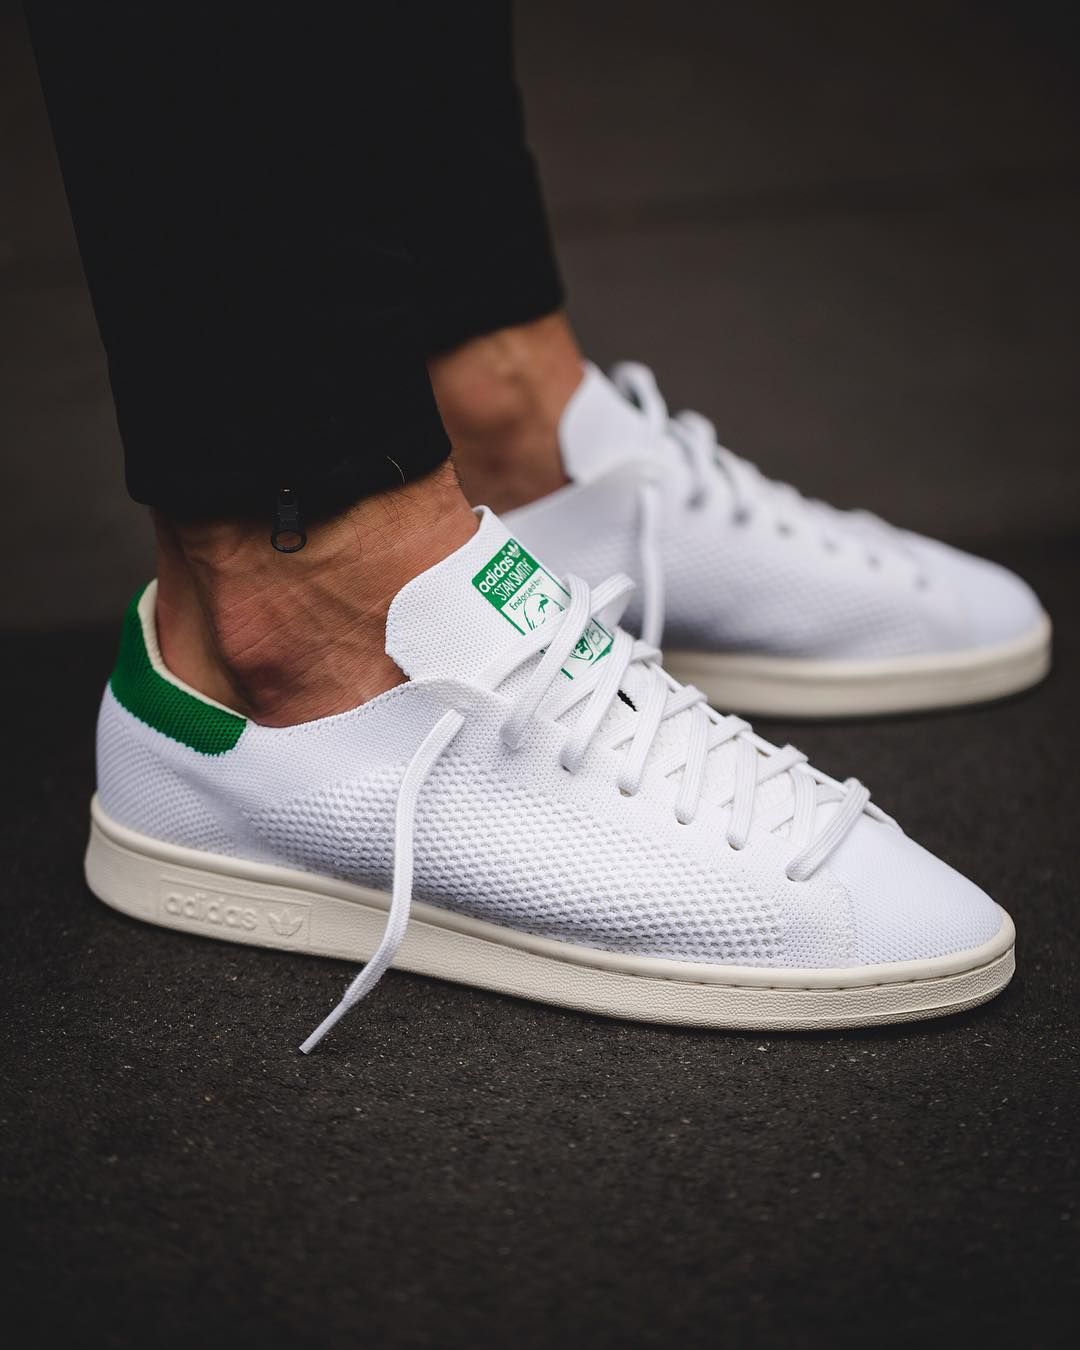 ADIDAS Stan Smith Primeknit Green || Follow @filetlondon for more street style…